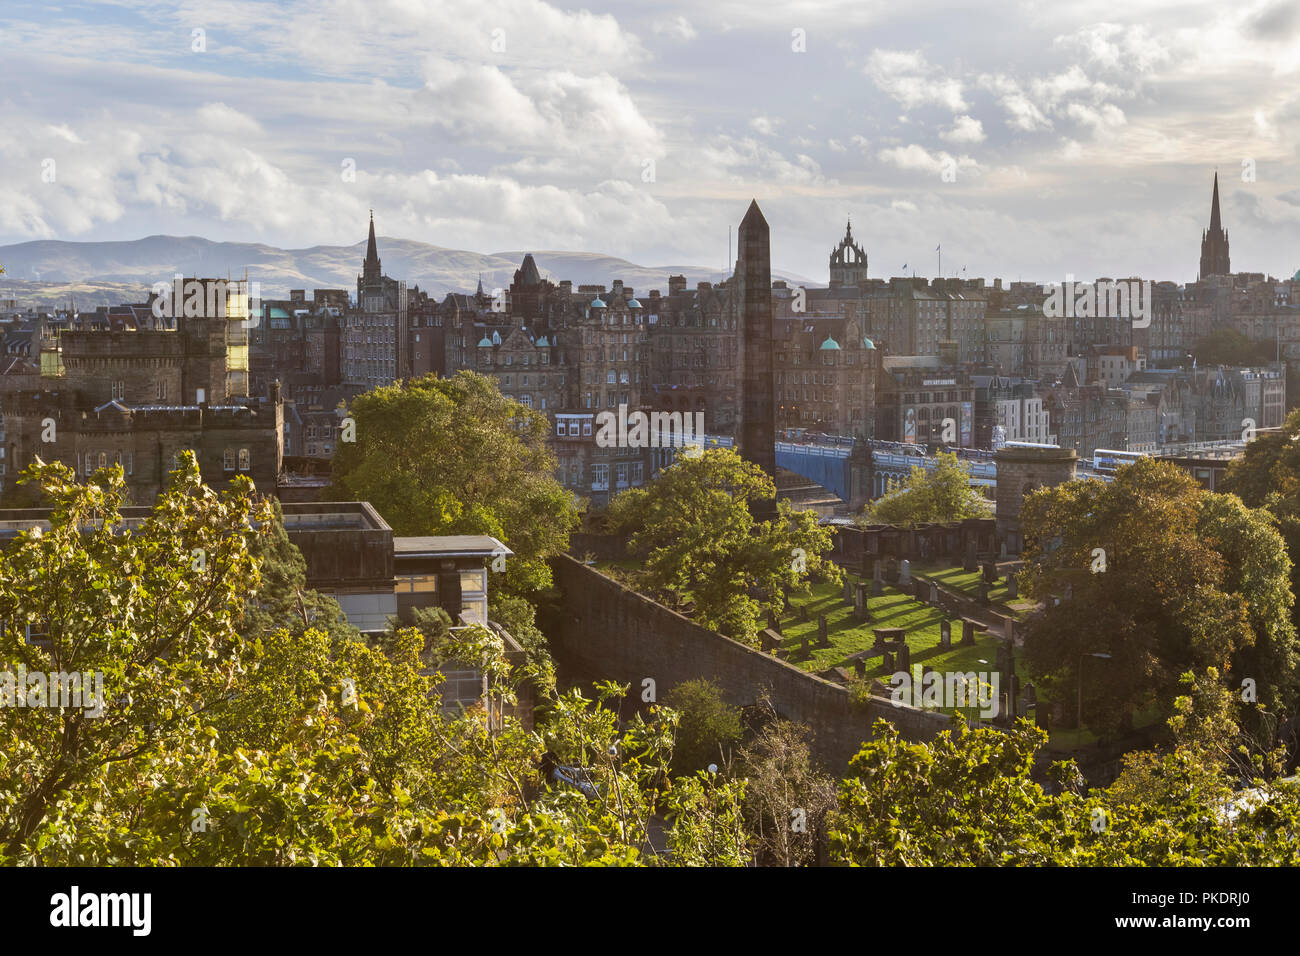 Political Martyrs Monument old calton hill burial ground Edinburgh, Scotland Stock Photo